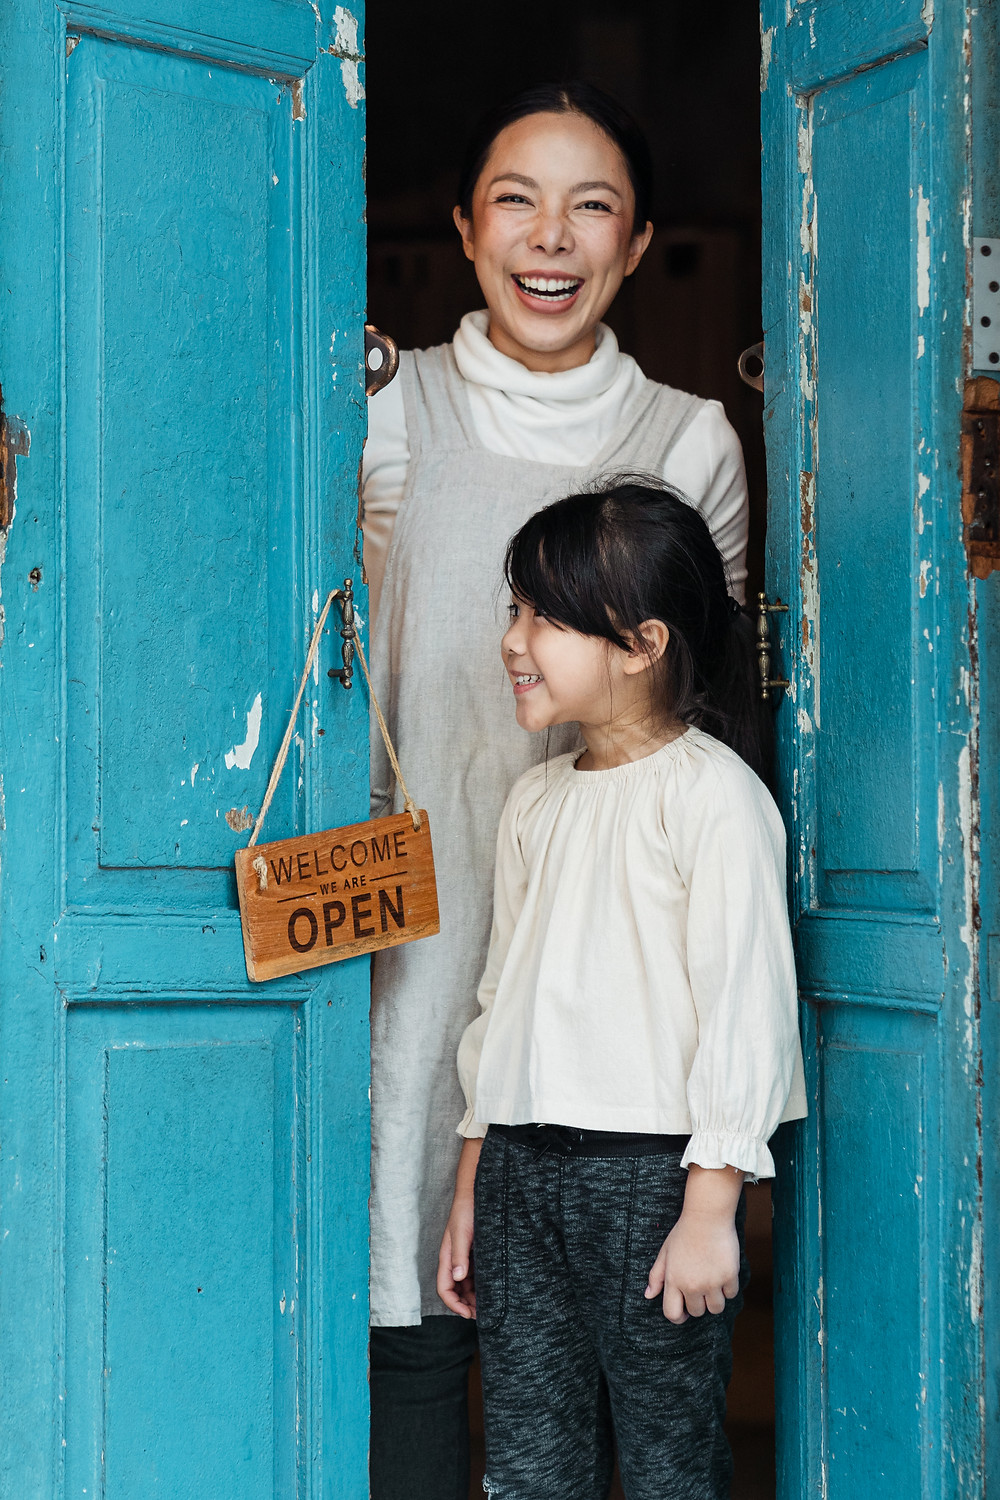 woman and little girl standing in open doorway with a welcome sign on the doorknob